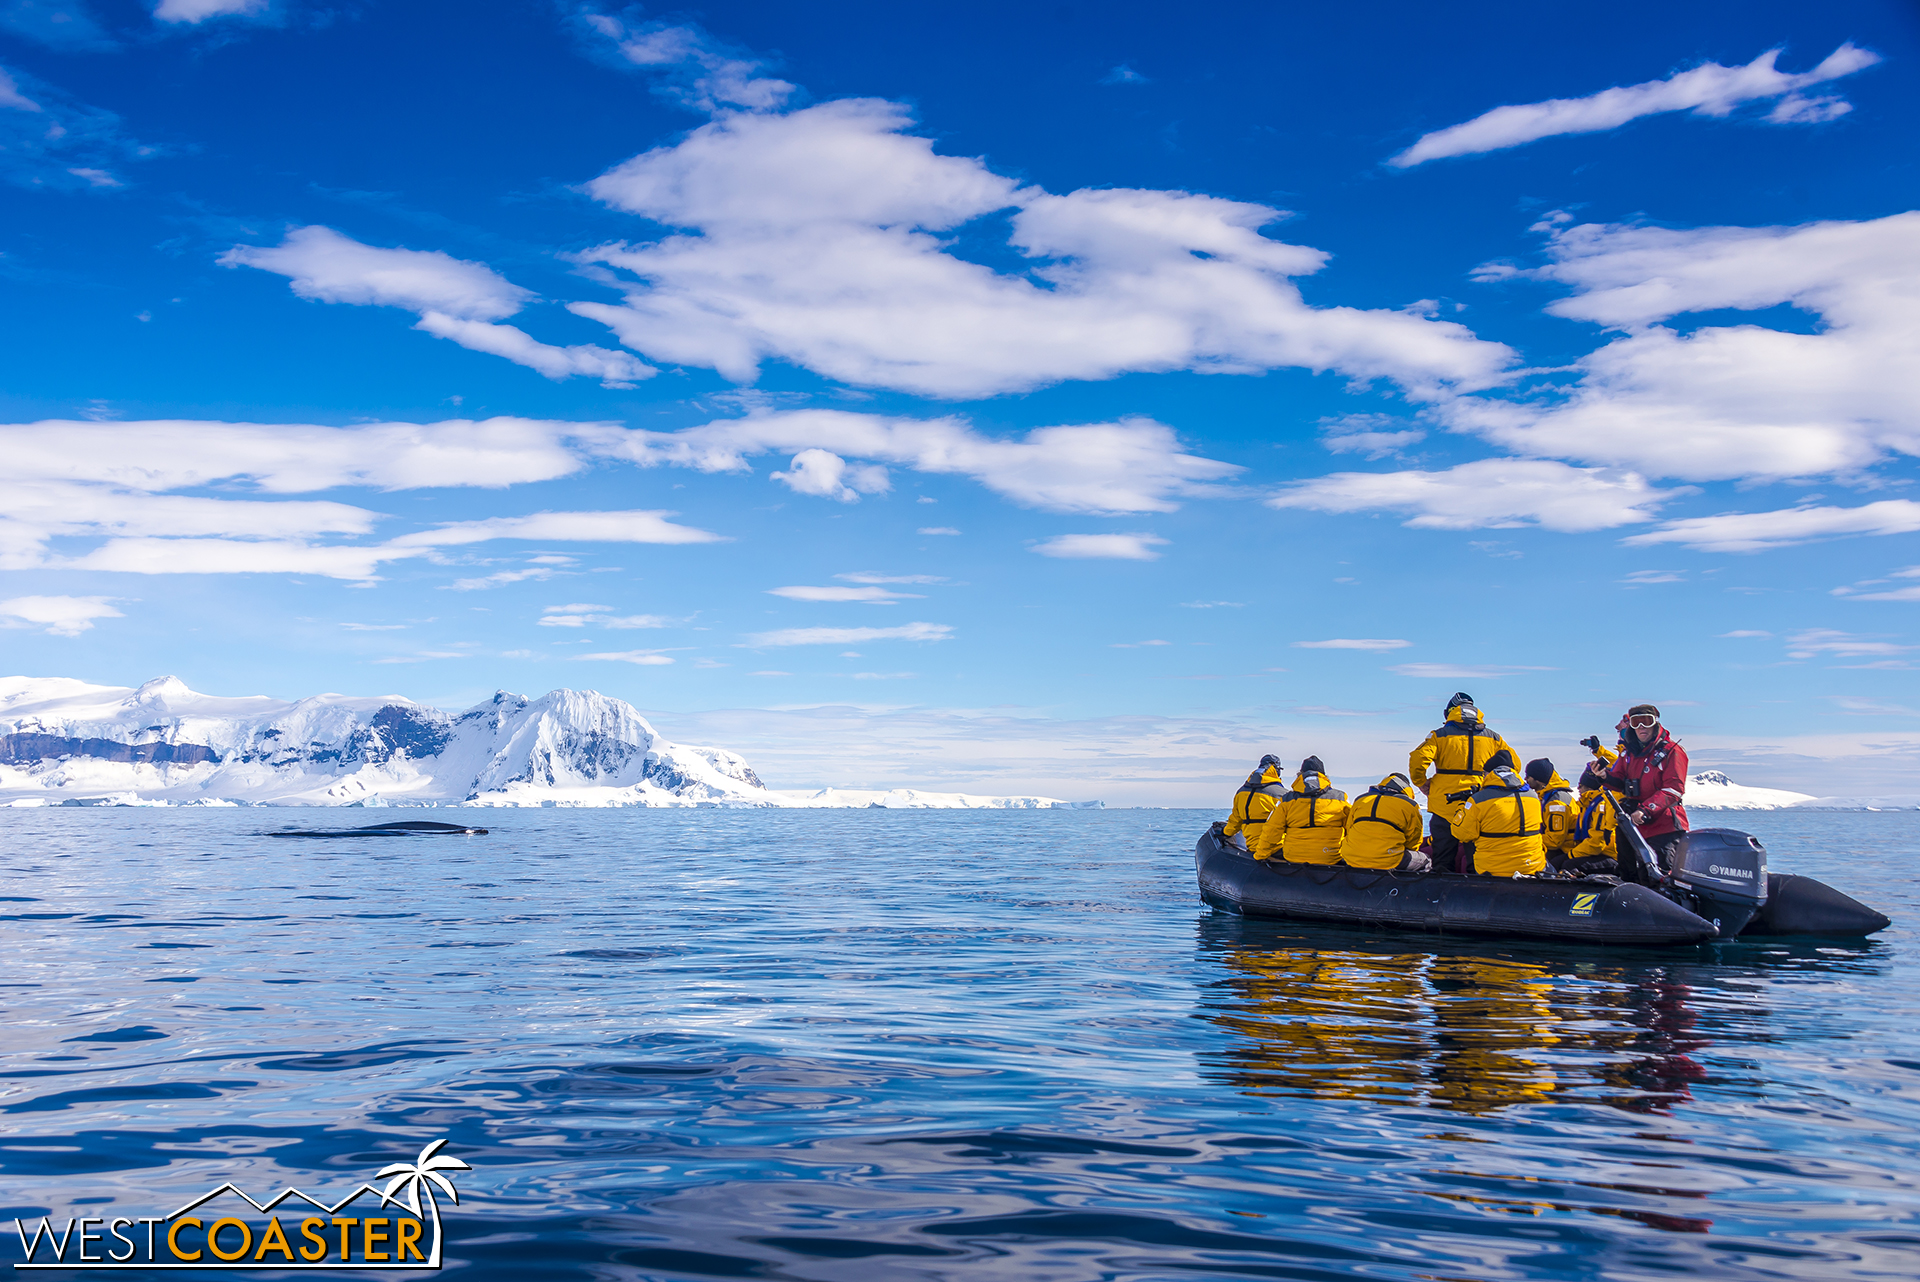 A Quark Expeditions zodiac raft for perspective.